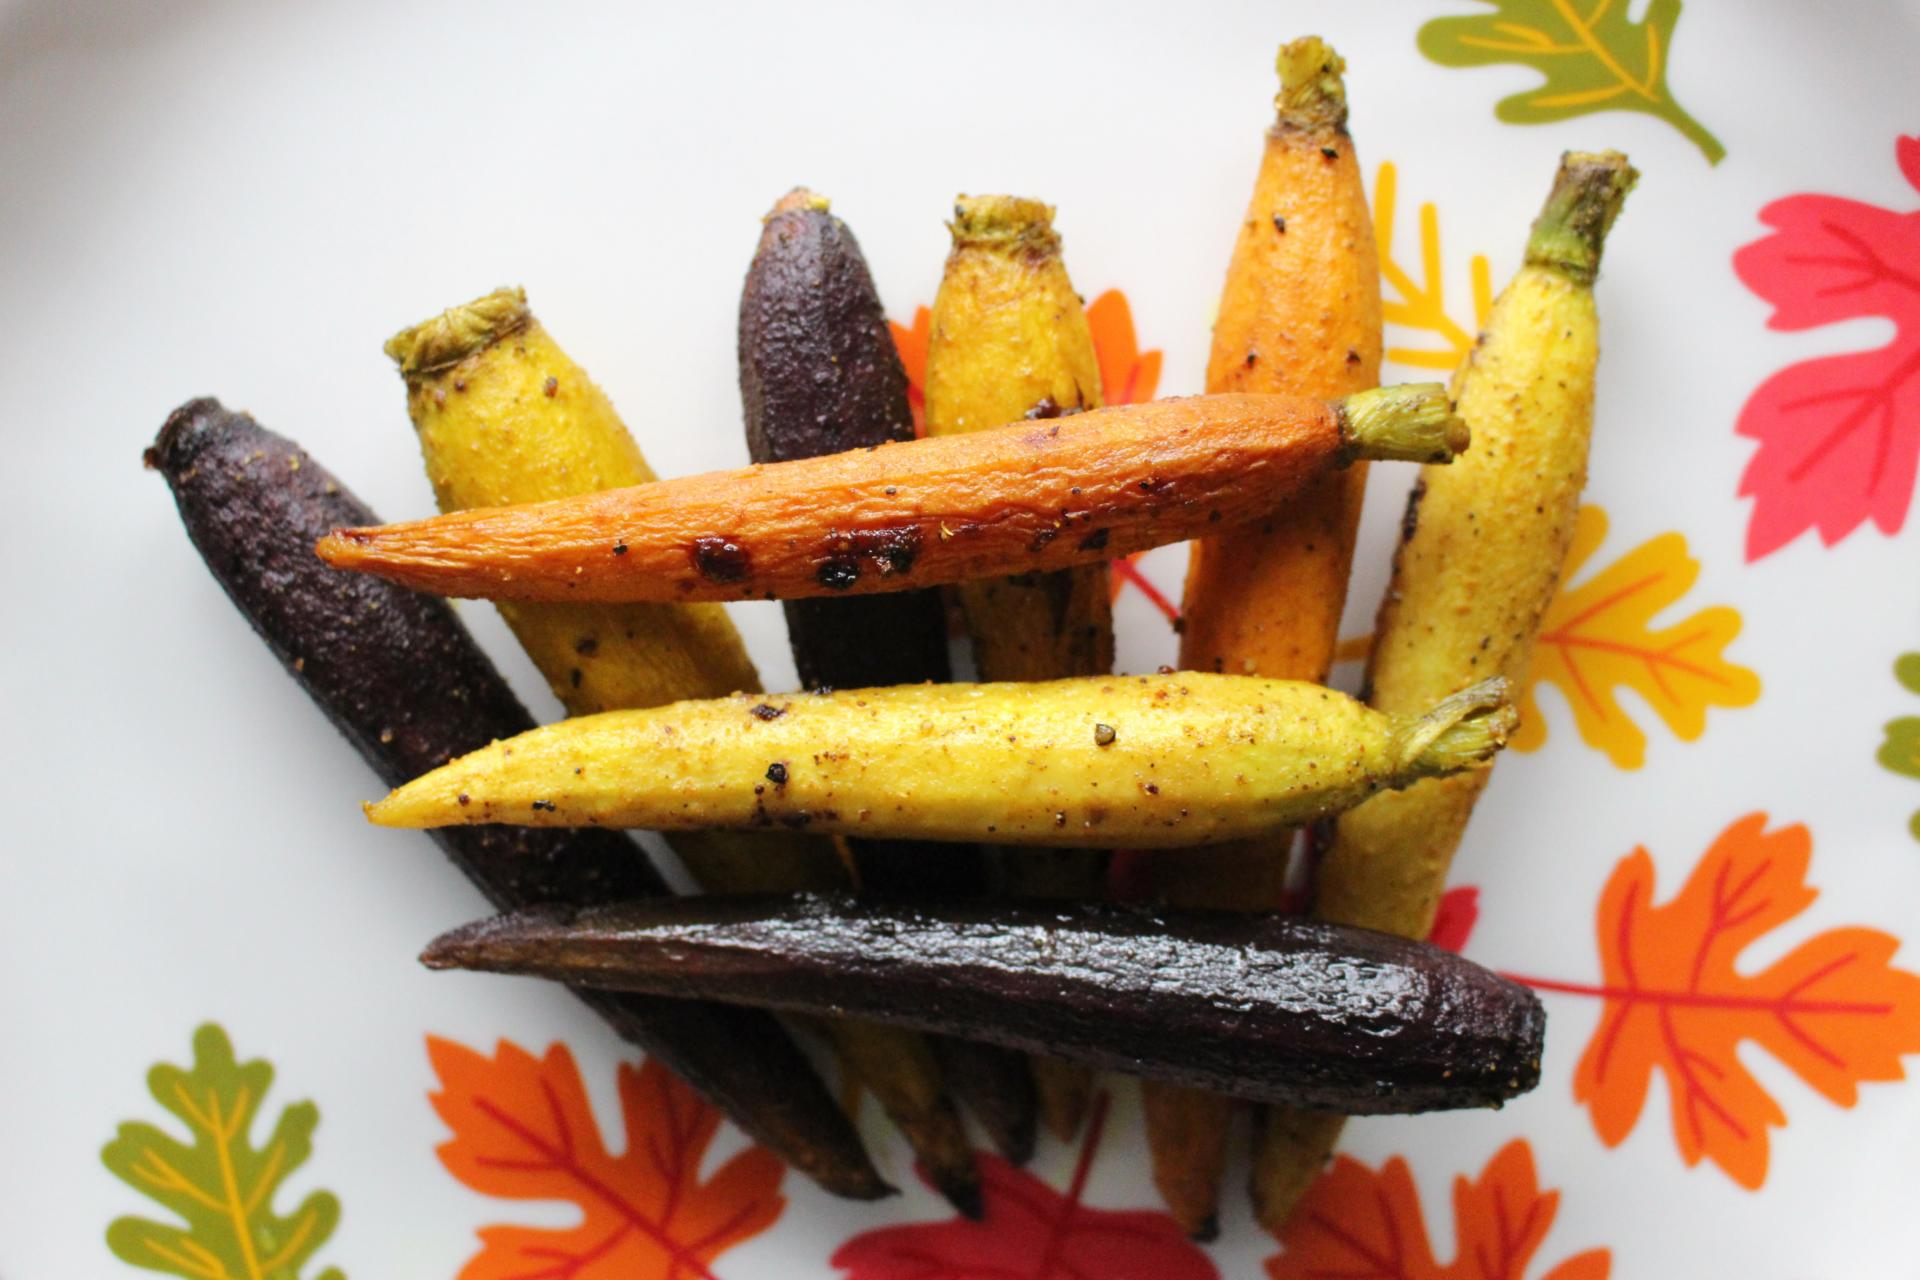 VEGGIES: Curry Roasted Rainbow Carrots by New Jersey foodie blogger What's For Dinner Esq.